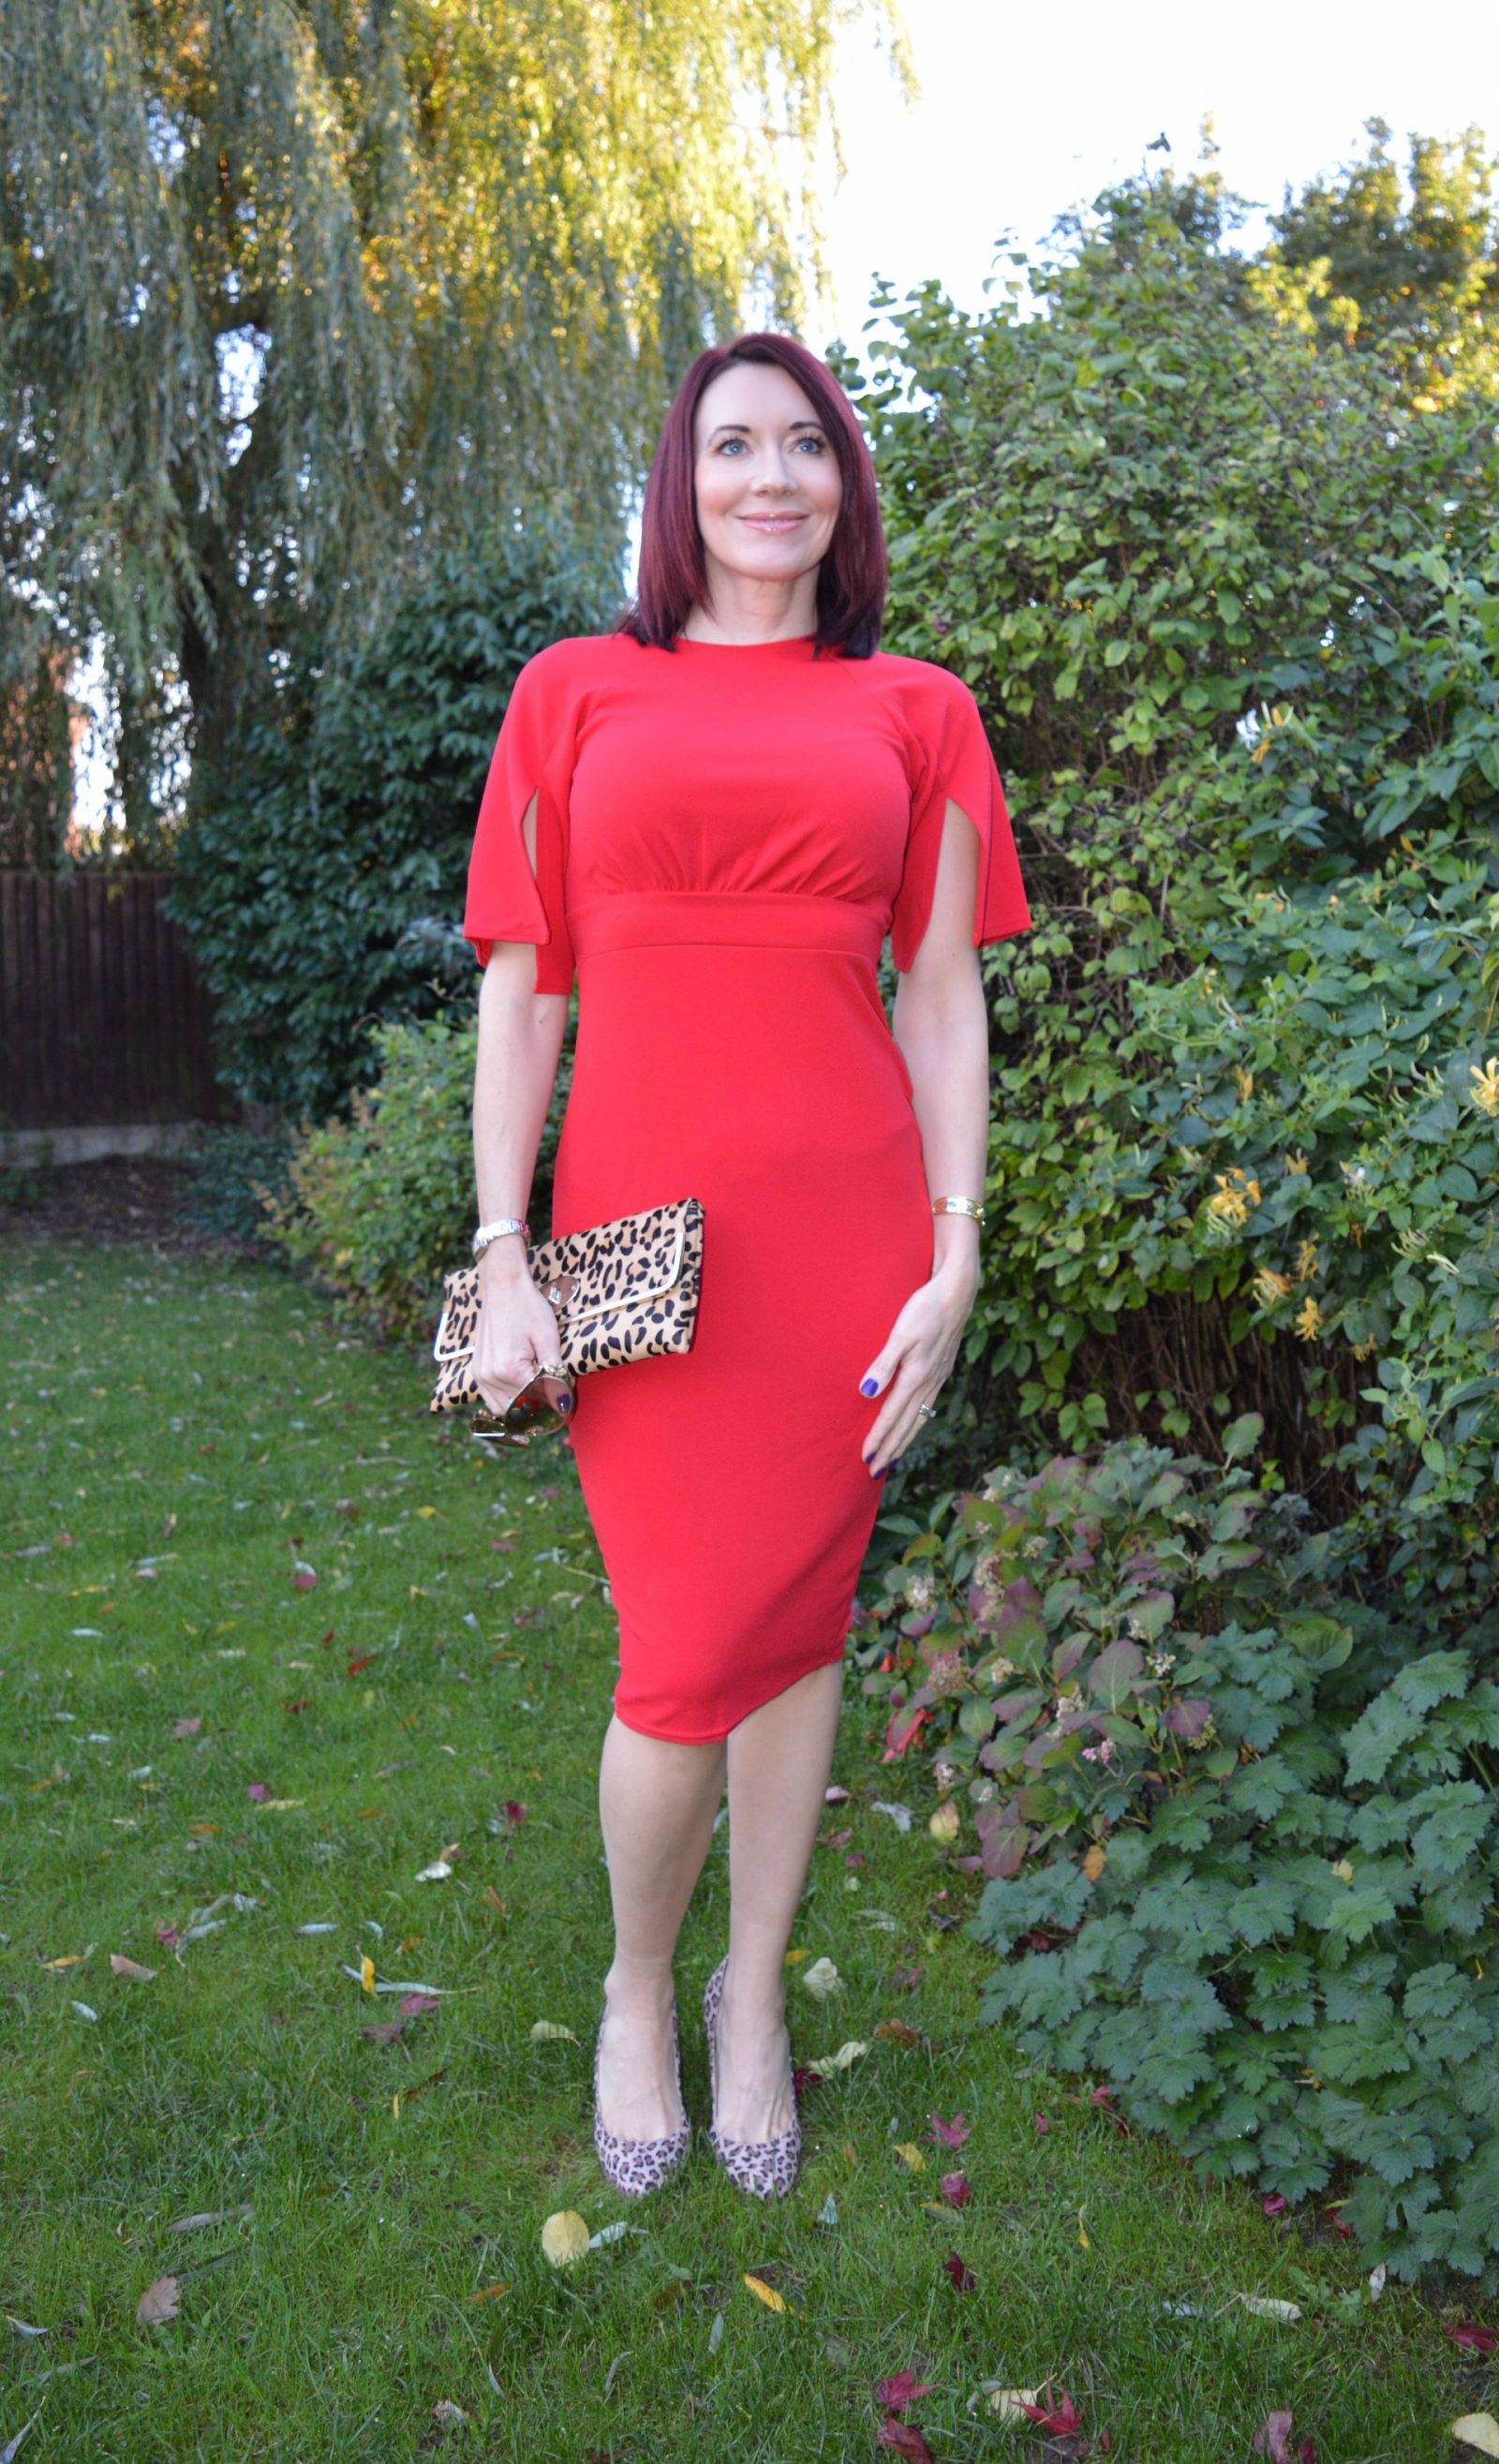 Boohoo Red dress with leopard print accessories